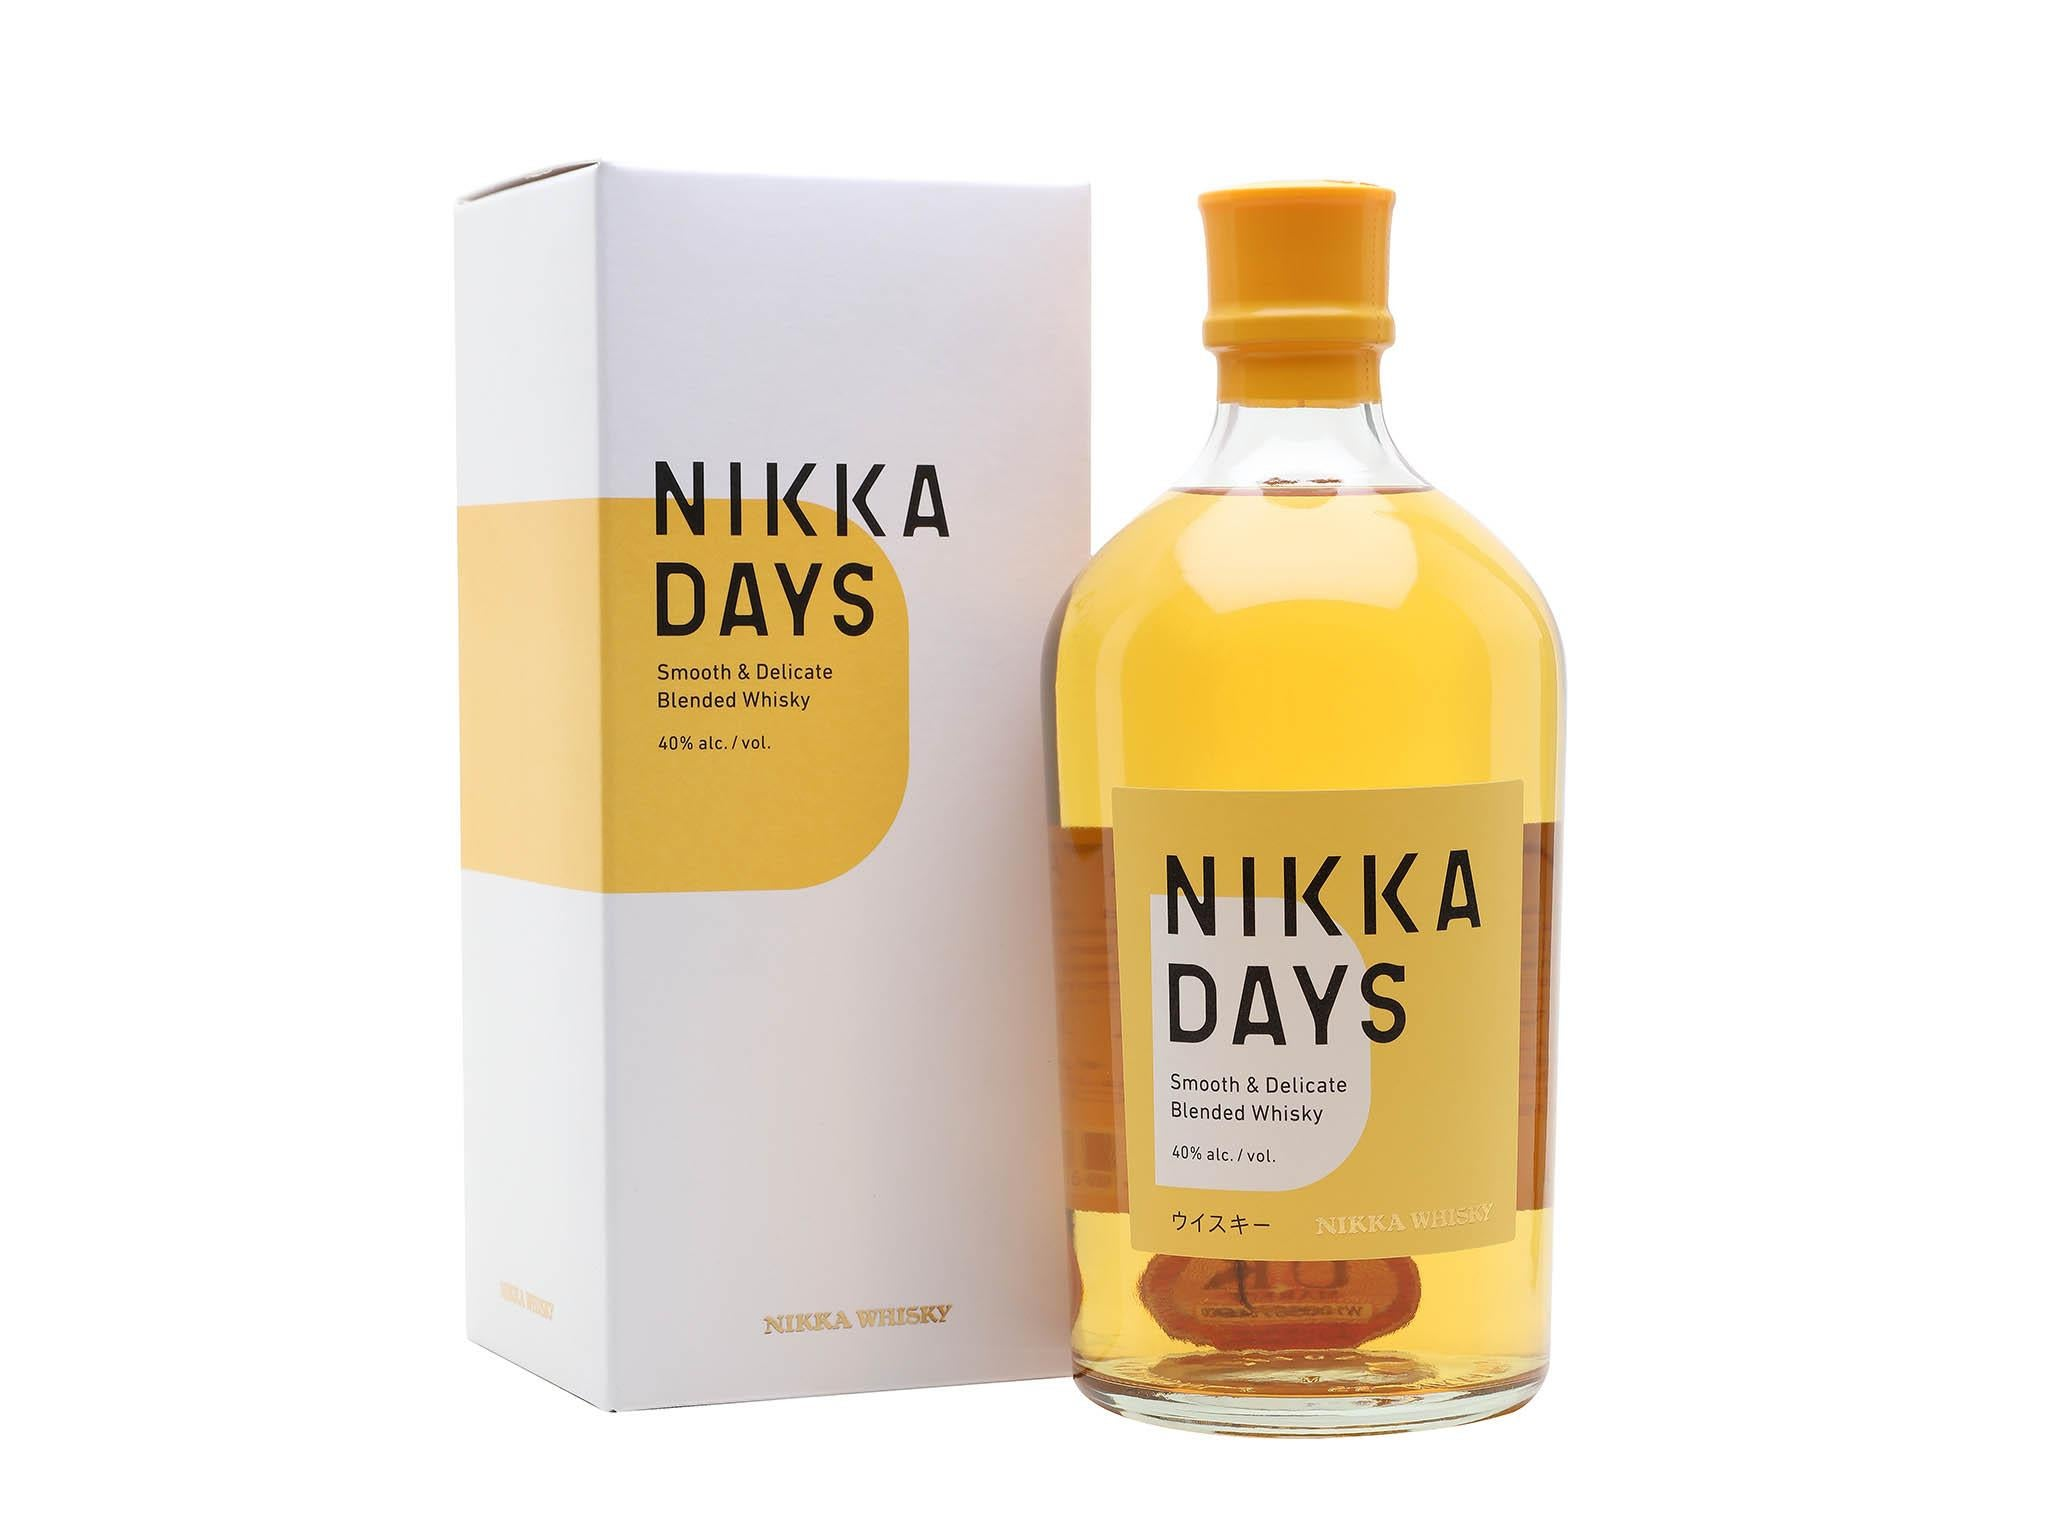 Best world whisky: From Japan to Sweden, find the perfect dram for you